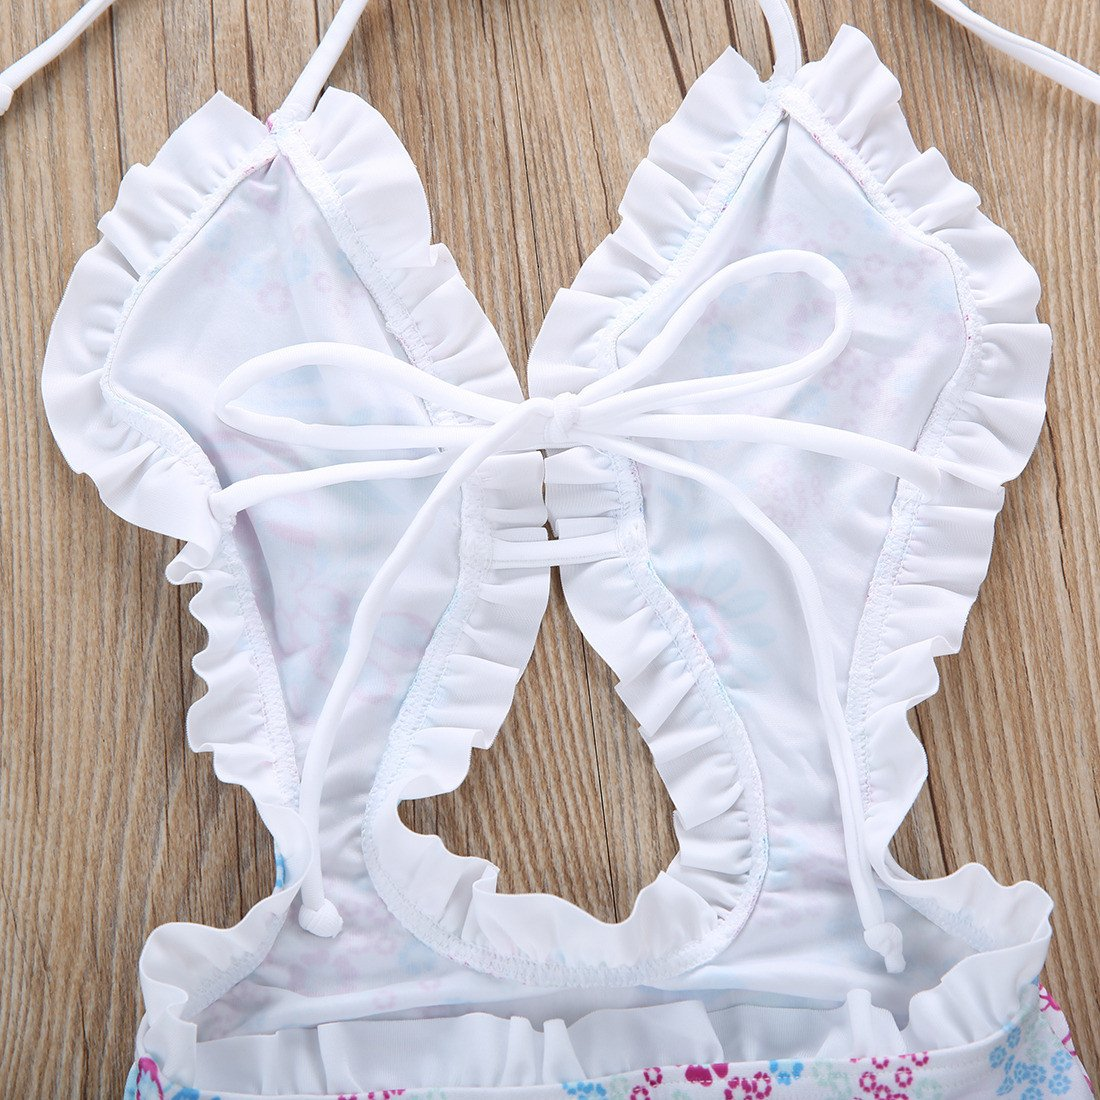 Ruffled Bathing Suit - Darling Little One